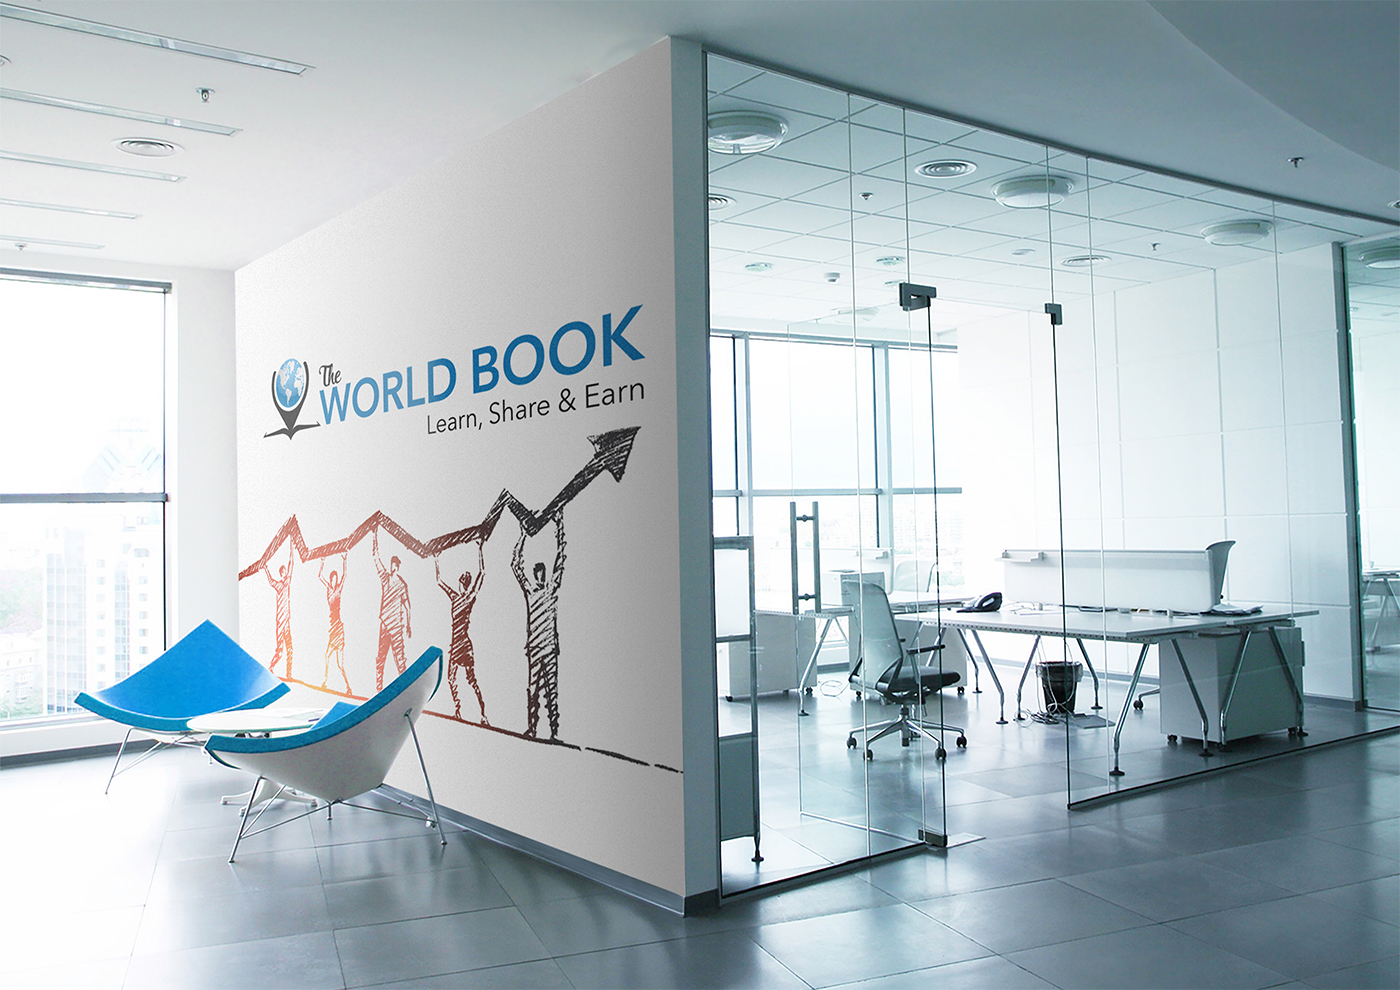 The World Book Office